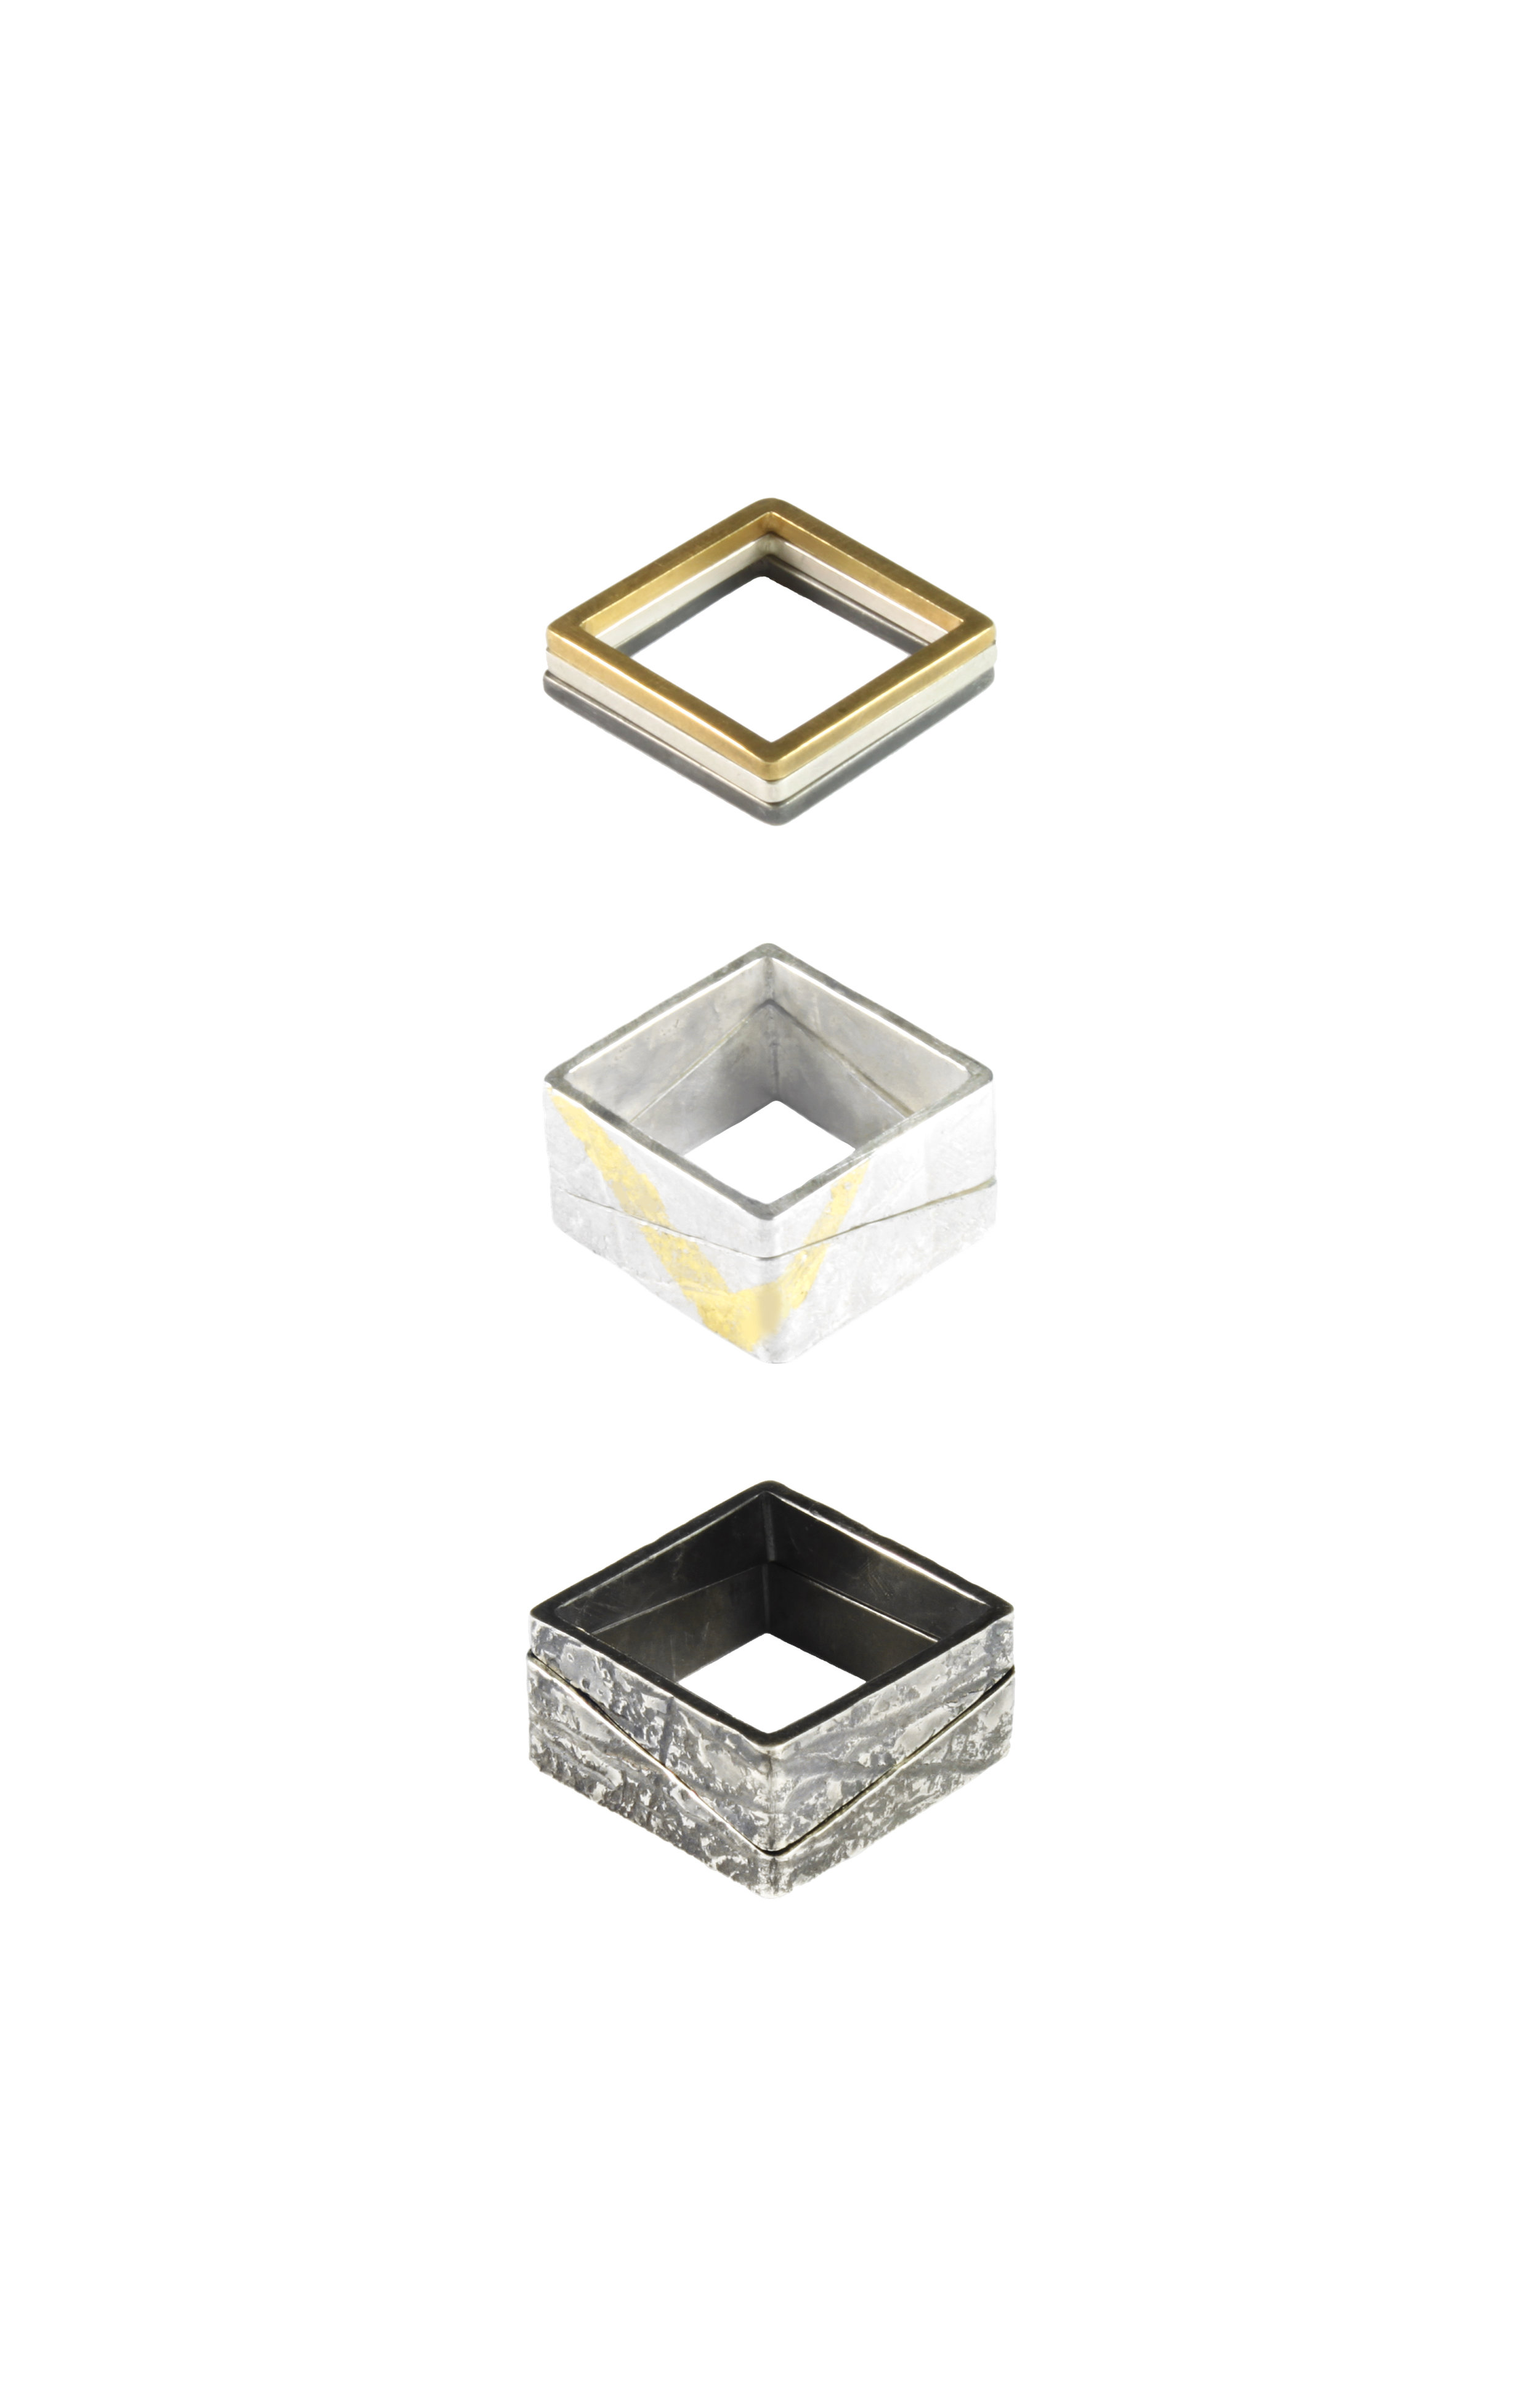 Rhona McCallum, Square Stacking Rings, Silver, Oxidised Silver and 22ct gold detail.jpg